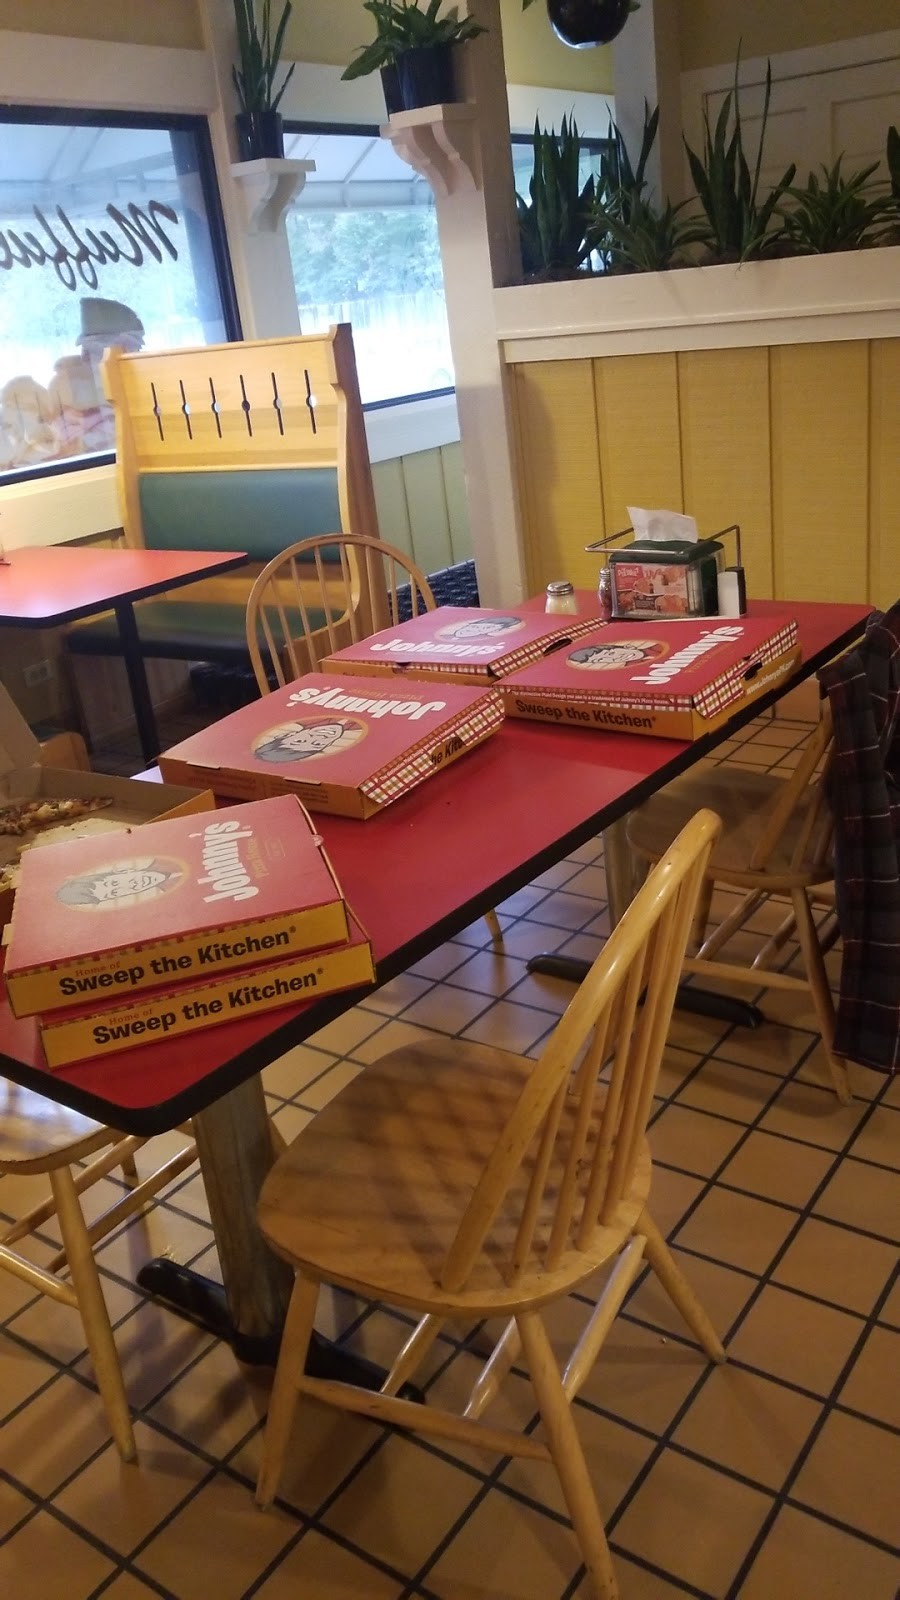 Johnnys Pizza House   meal delivery   102 Wallace Rd, West Monroe, LA 71291, USA   3183965120 OR +1 318-396-5120